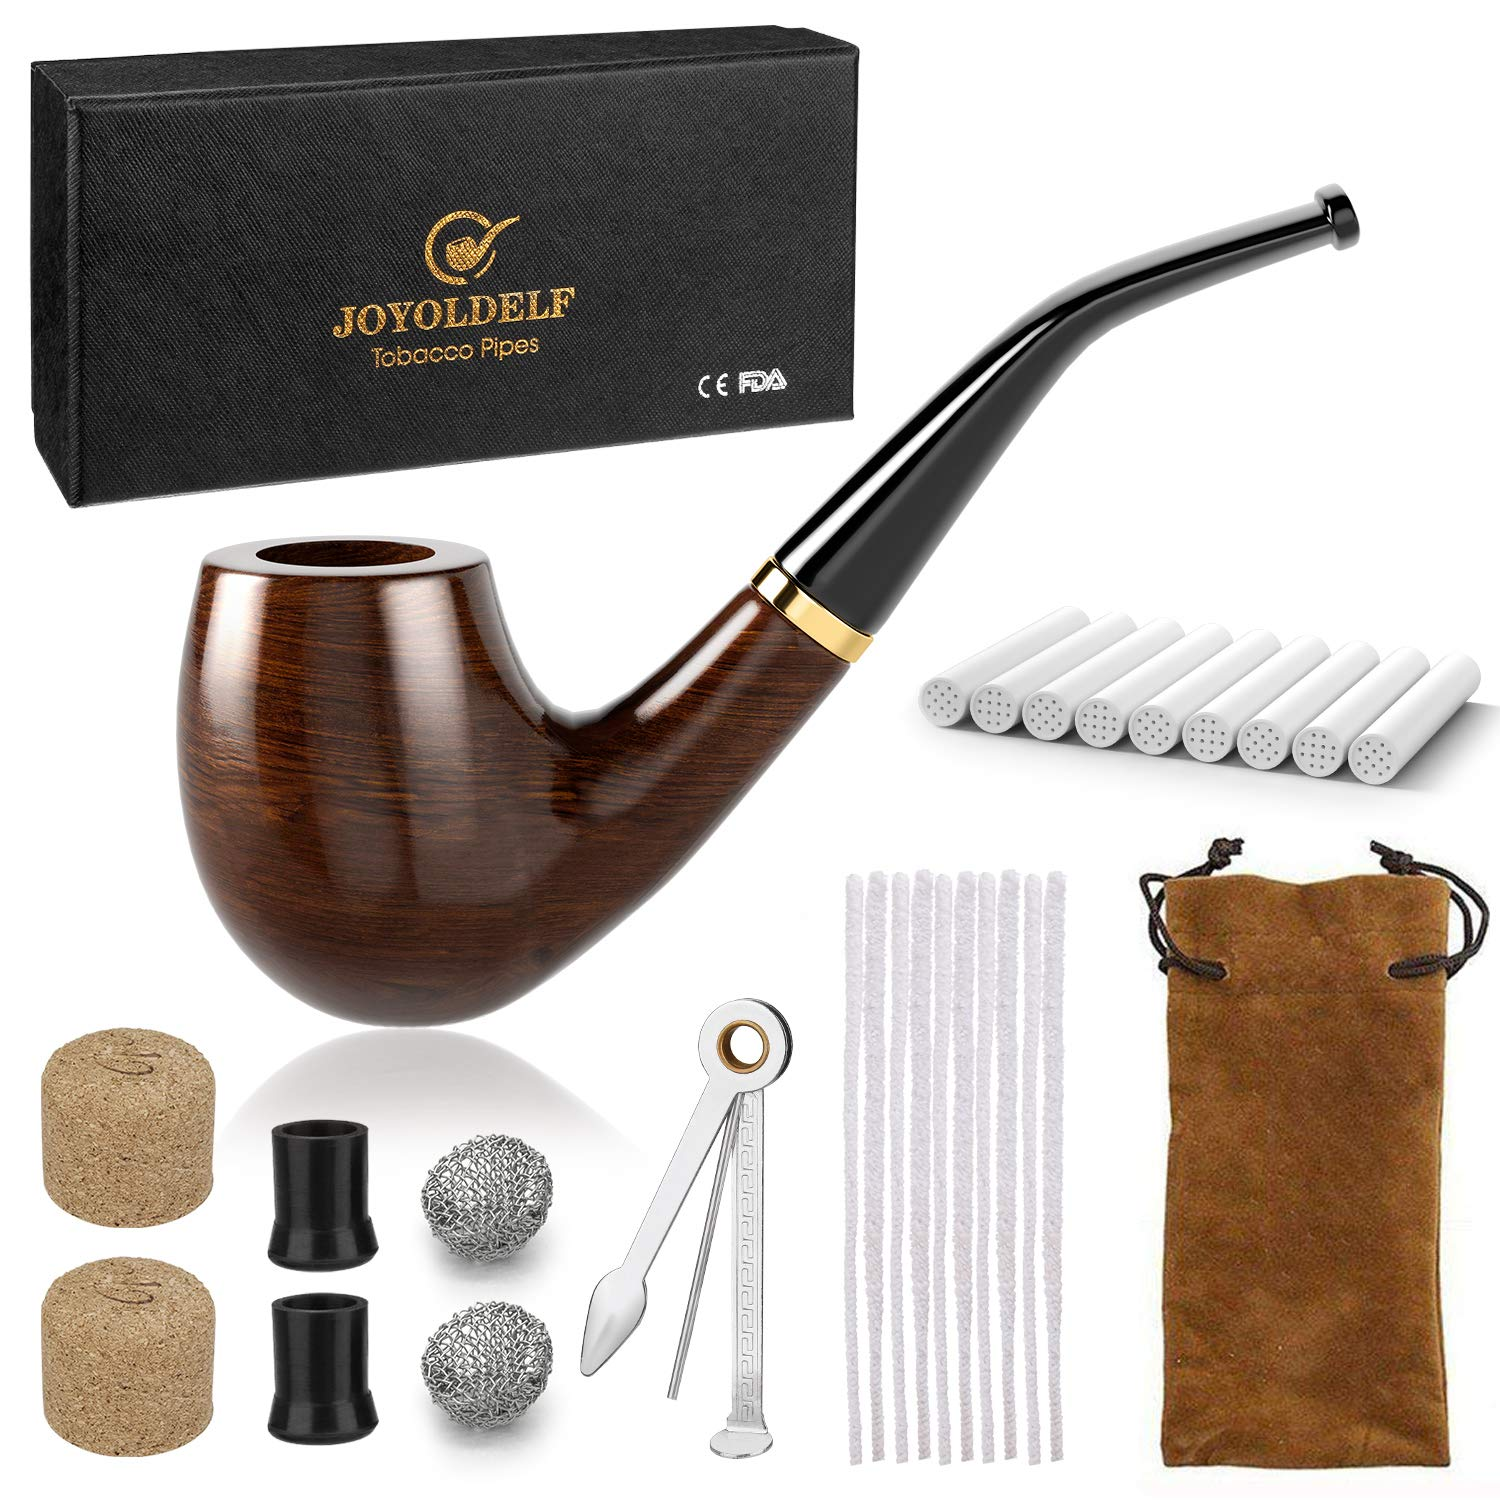 Joyoldelf Wooden Tobacco Smoking Pipe, Pear Wood Pipe with Pipe Cleaners, 9 mm Pipe Filters, 3-in-1 Pipe Scraper, Pipe Bits, Metal Balls, Cork Knockers, Bonus a Pipe Pouch with Gift Box by Joyoldelf